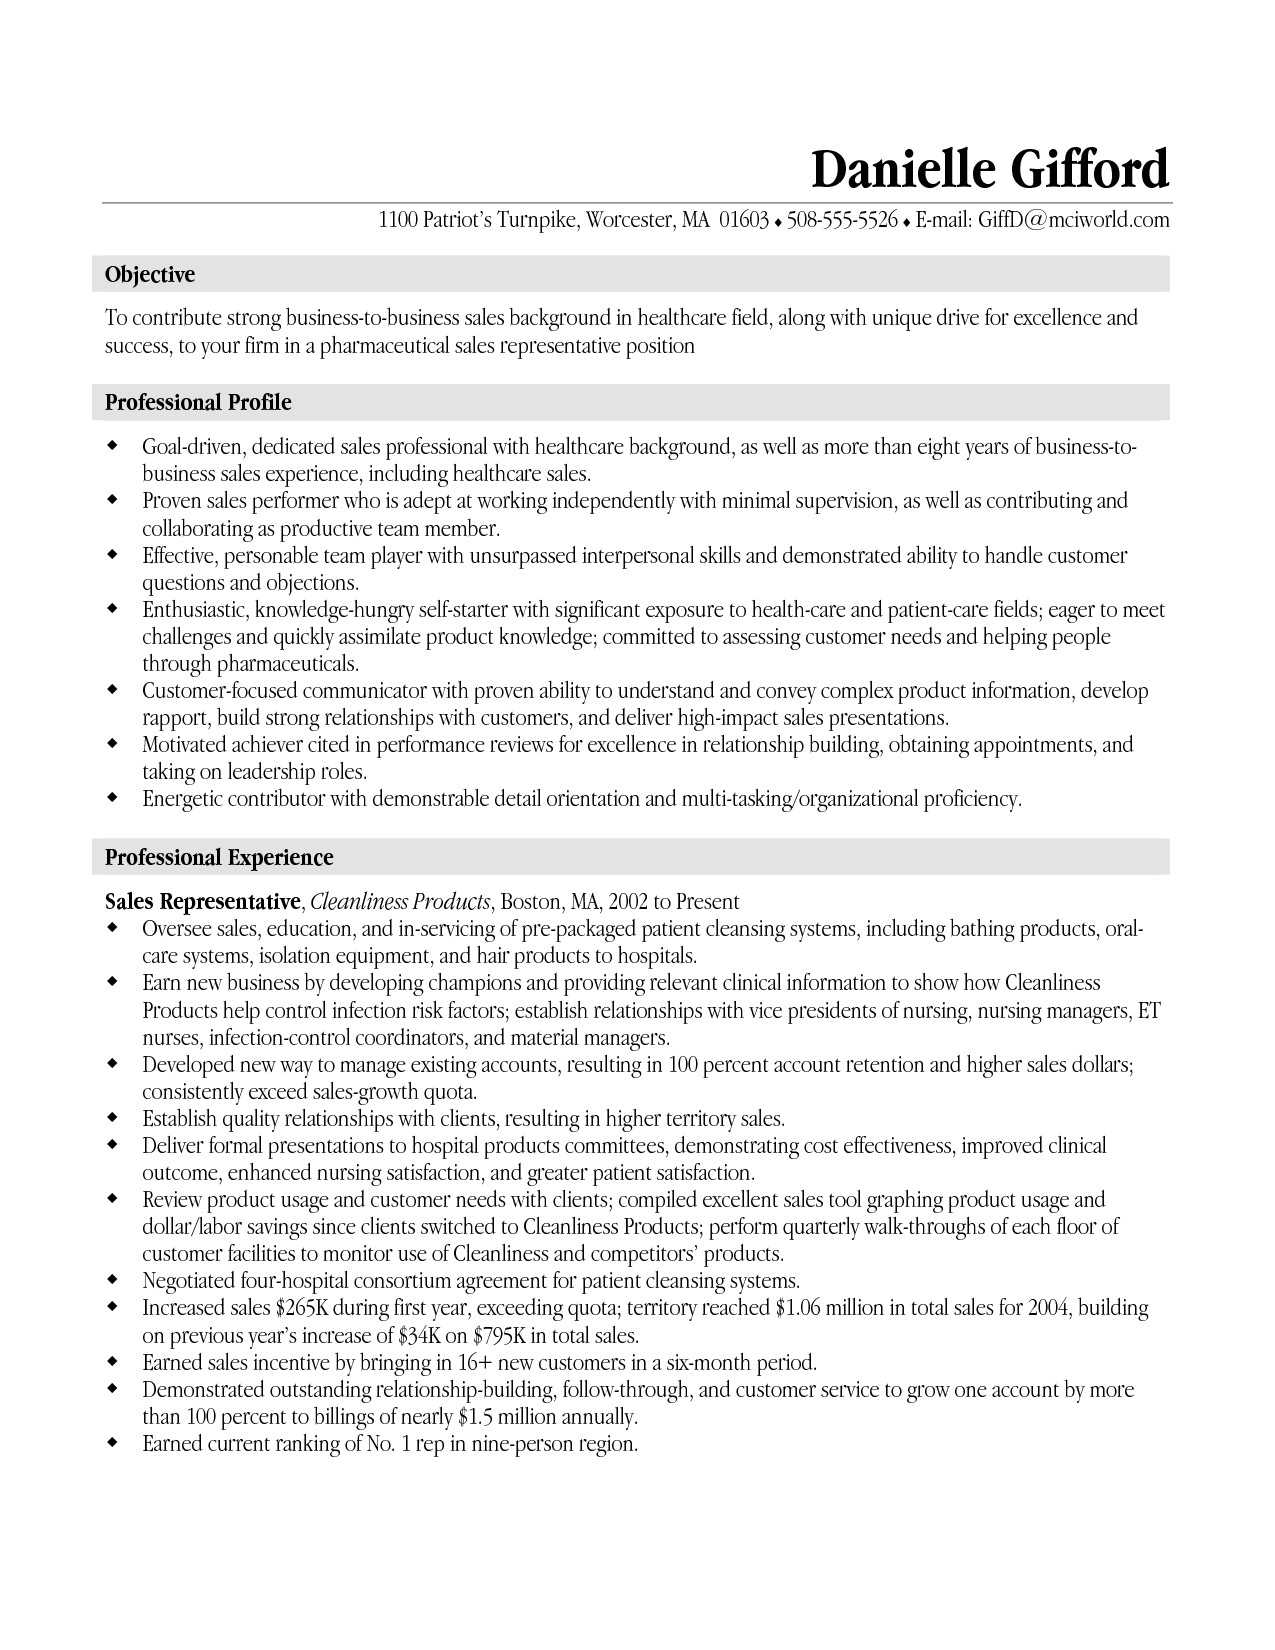 Pharmaceutical Sales Rep Resume Template Pharmaceutical Resume Templates Basic Resume Templates